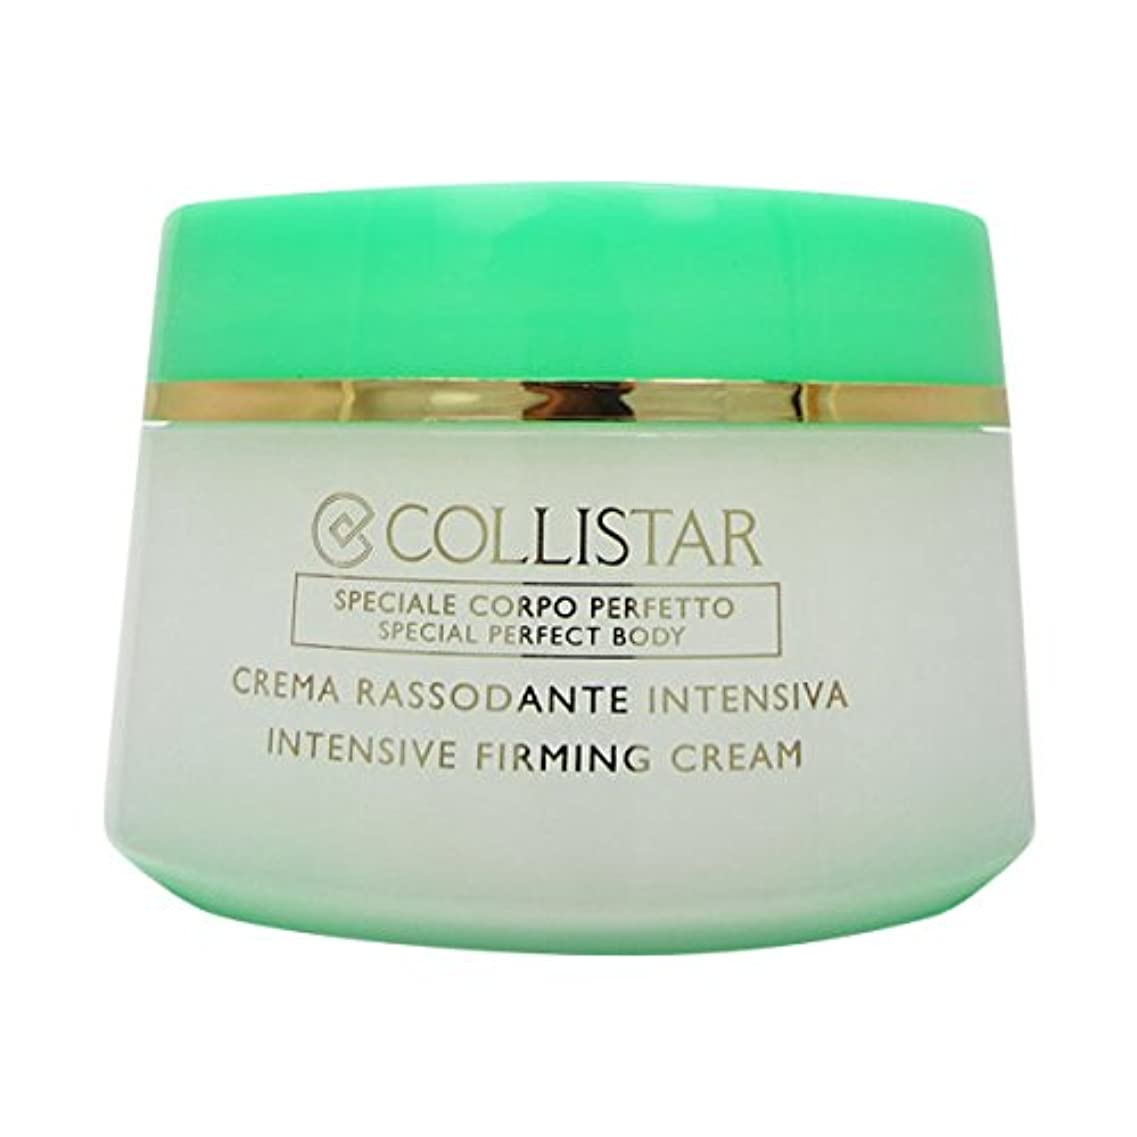 Collistar Intensive Firming Cream 400ml [並行輸入品]